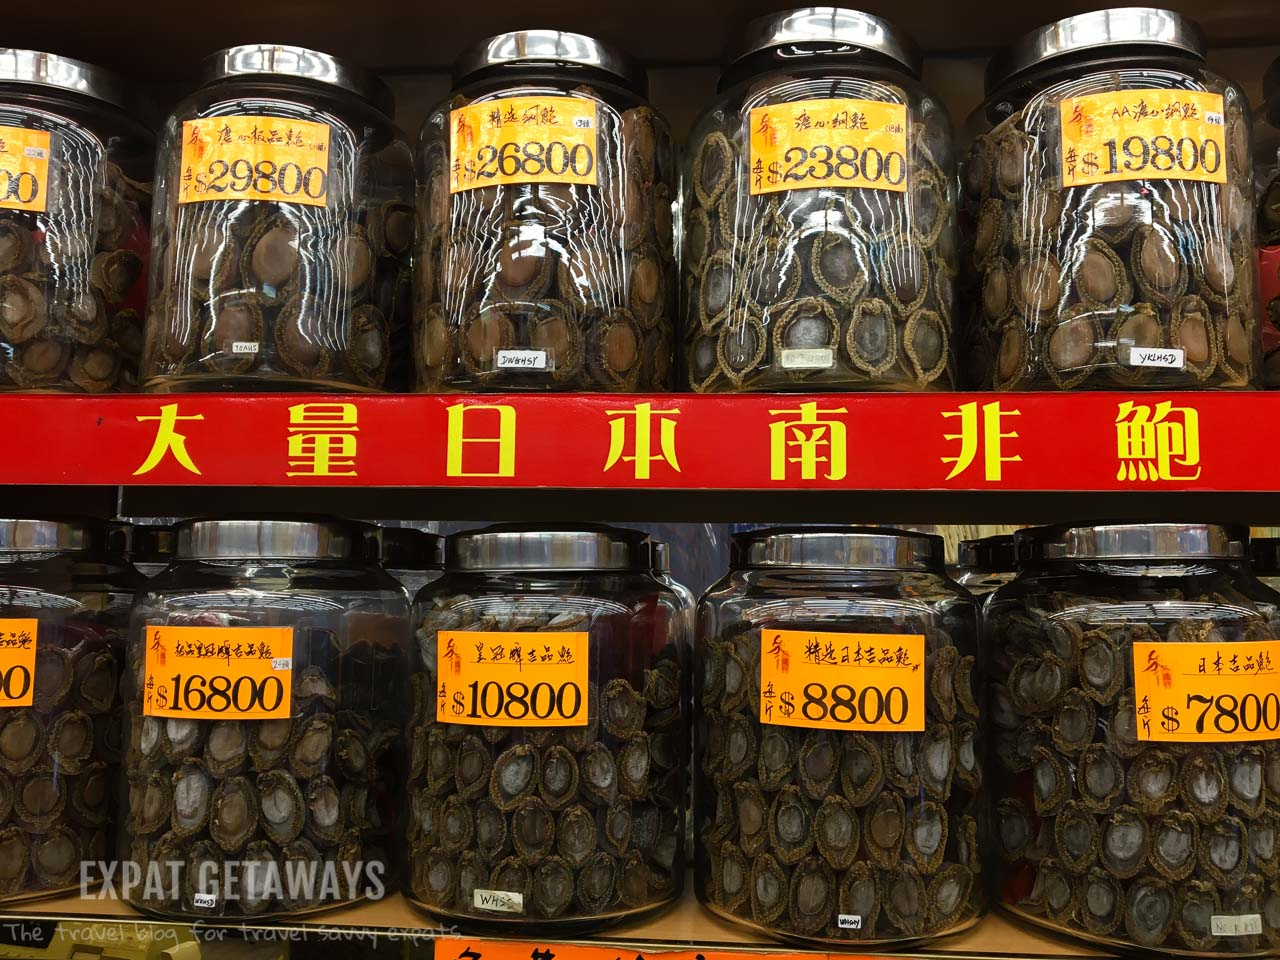 Dried seafood comes with a luxury price tag.